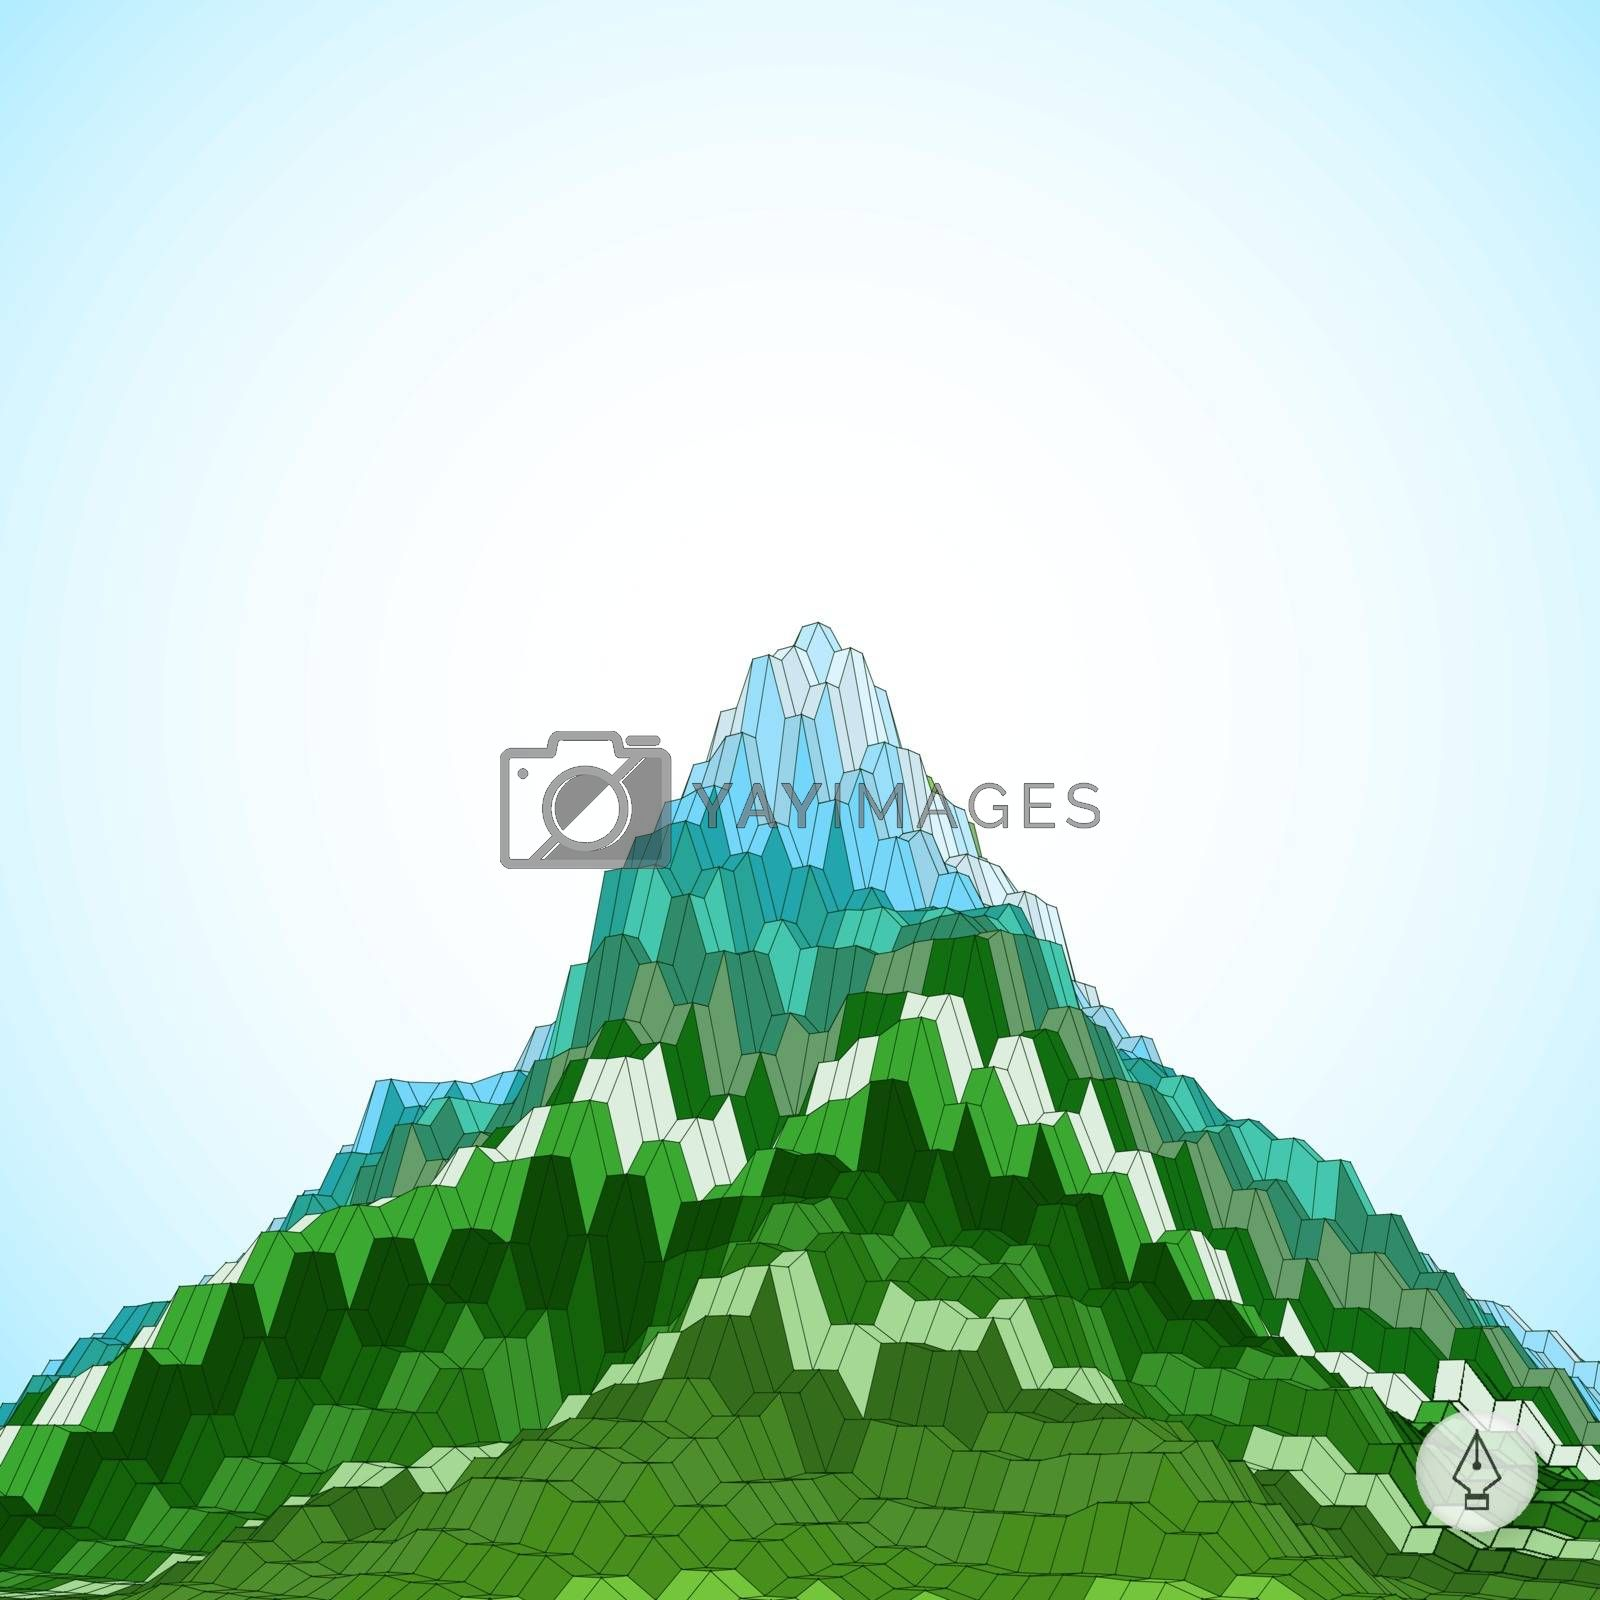 Abstract background with mountain. Mosaic. 3d vector illustration. Can be used for wallpaper, web page background, web banners.